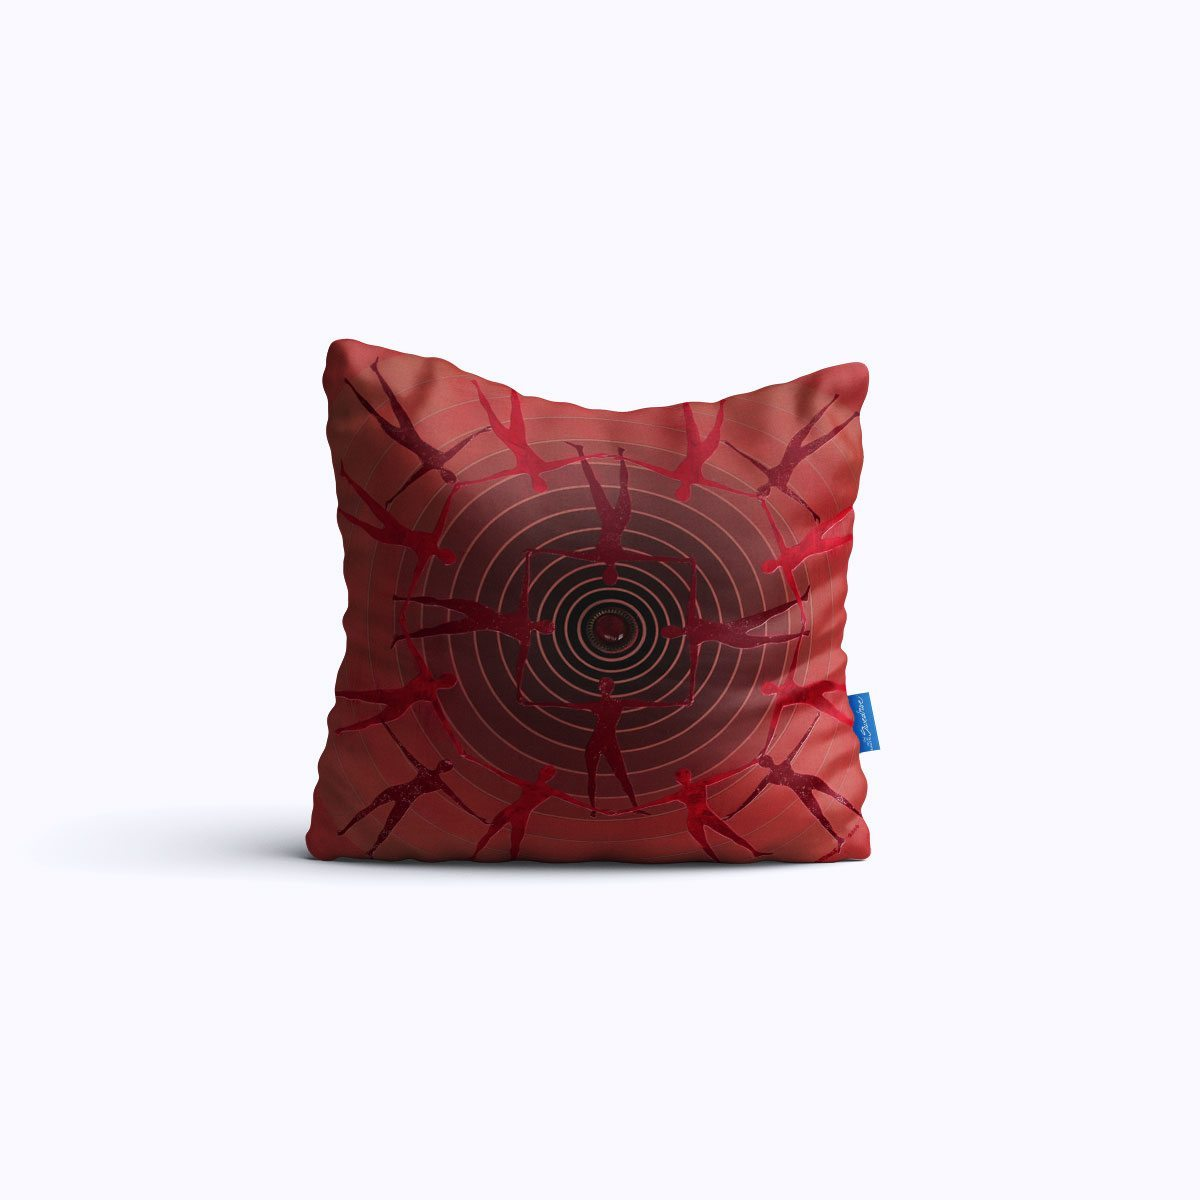 RMS020-Spin Study 02 - Throw Pillow - Swedroe Licensingc